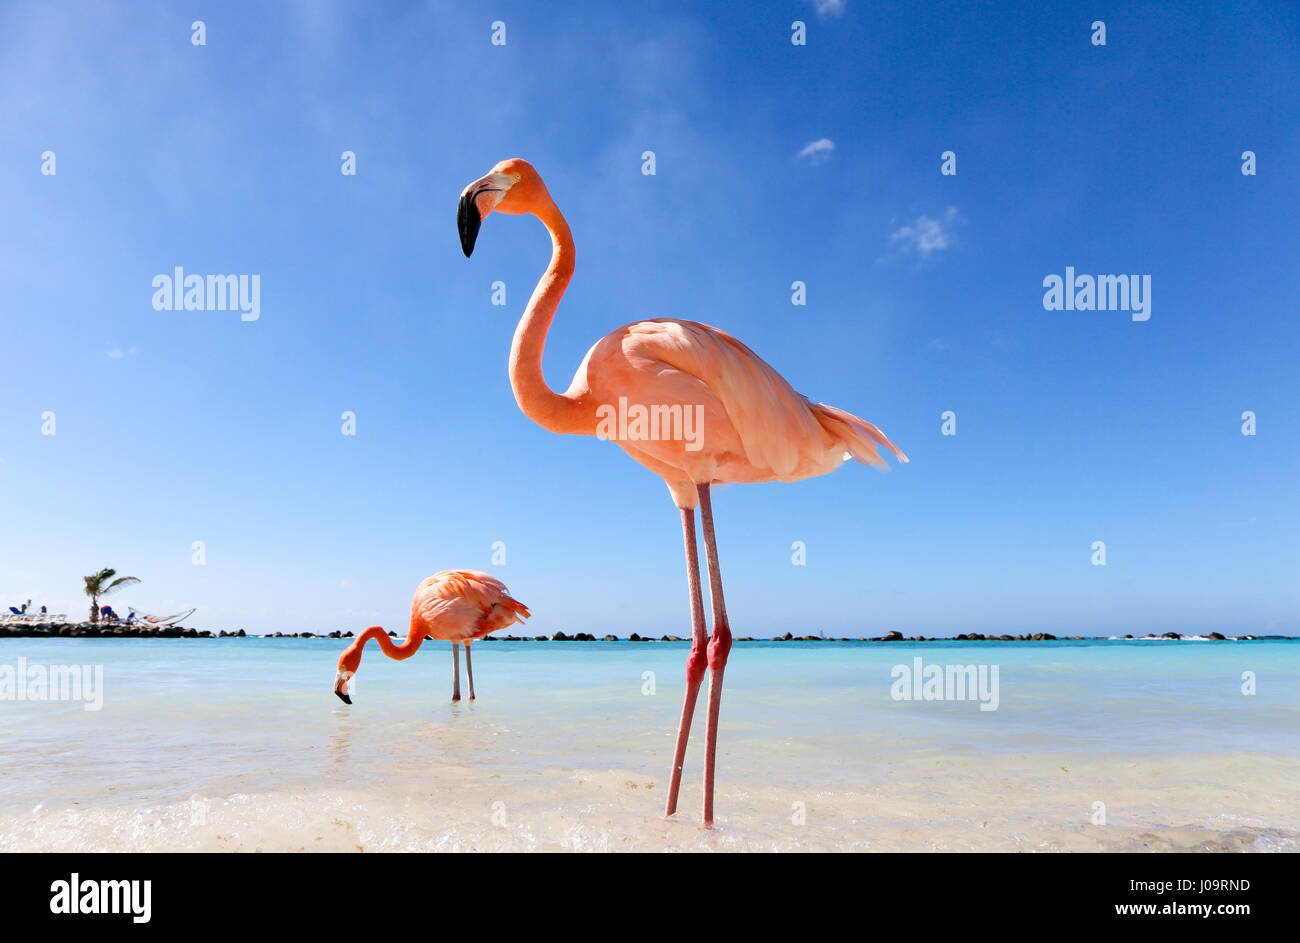 Benedenwindse Stock Photos & Benedenwindse Stock Images - Alamy